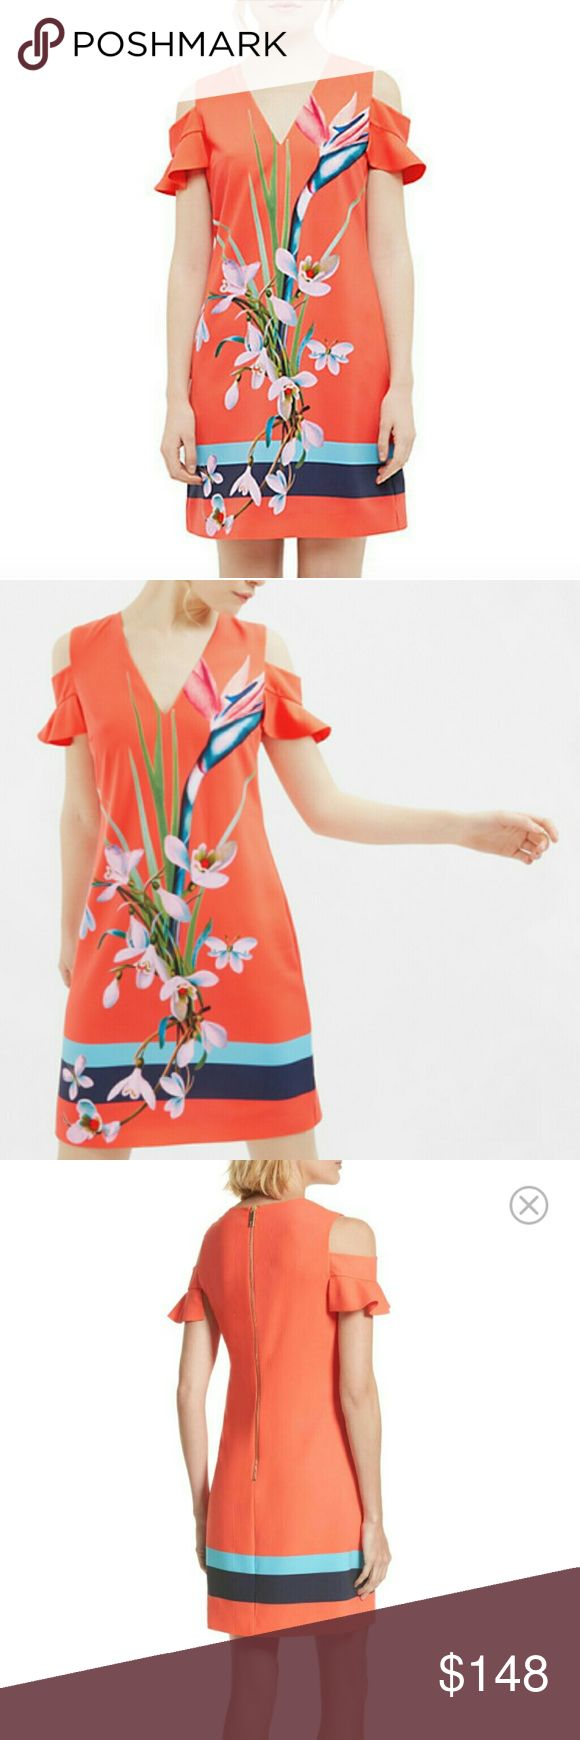 New NWOT Ted Baker Orange Birds of Paradise Dress Really pretty fun dress from Ted baker. This dress is perfect for any summer occasion. Zip up back.   Brand New without tags. Tags were removed to prevent returns. TB size 1 is a US size 4 Ted Baker Dresses